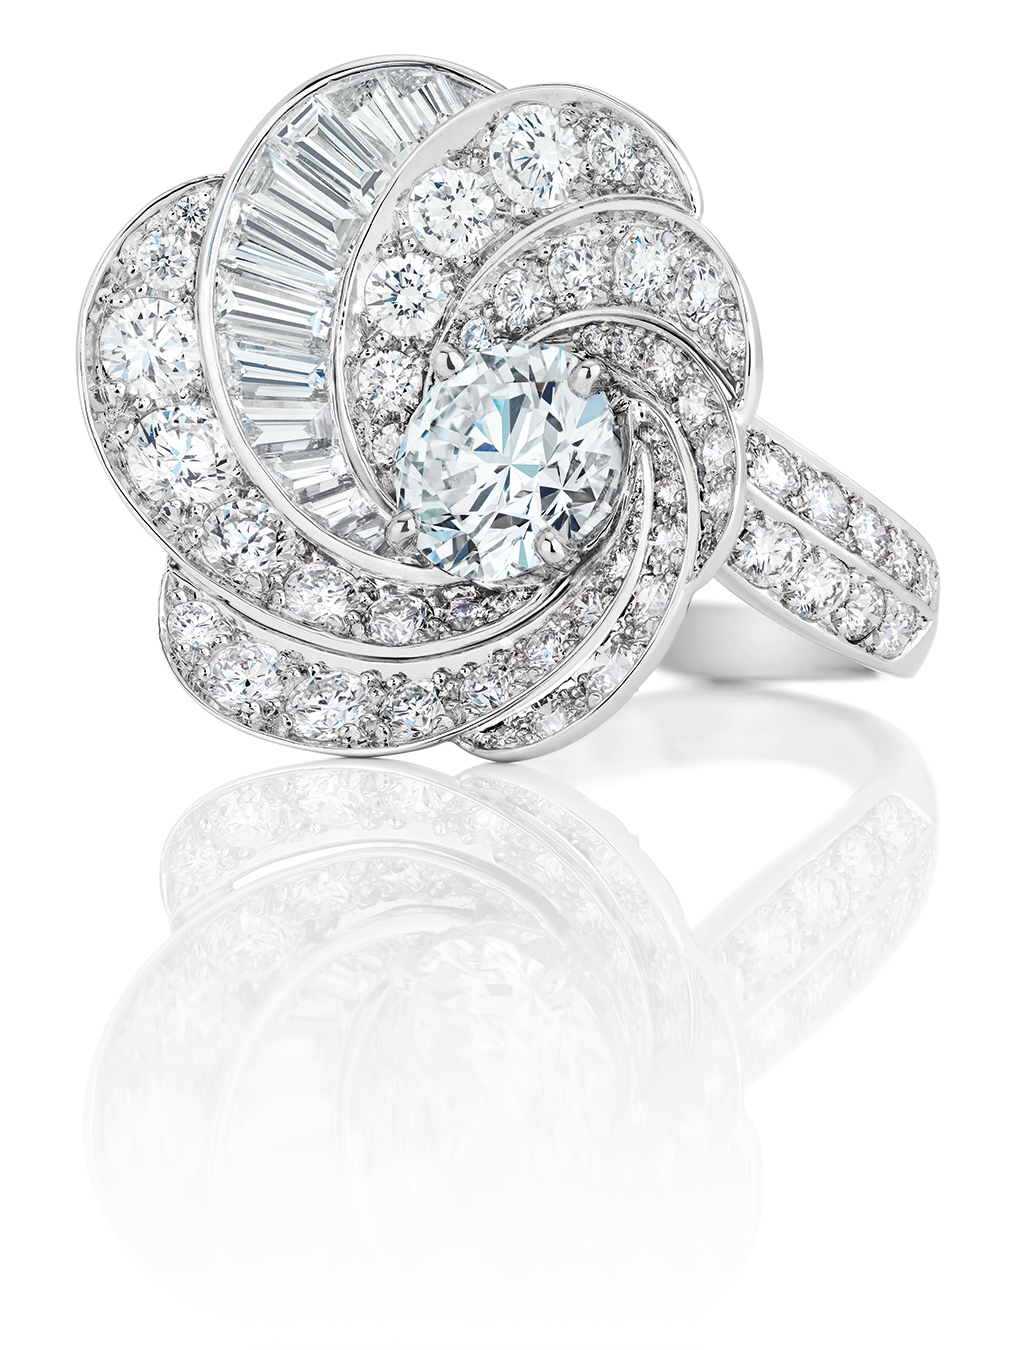 Diamond ring essay